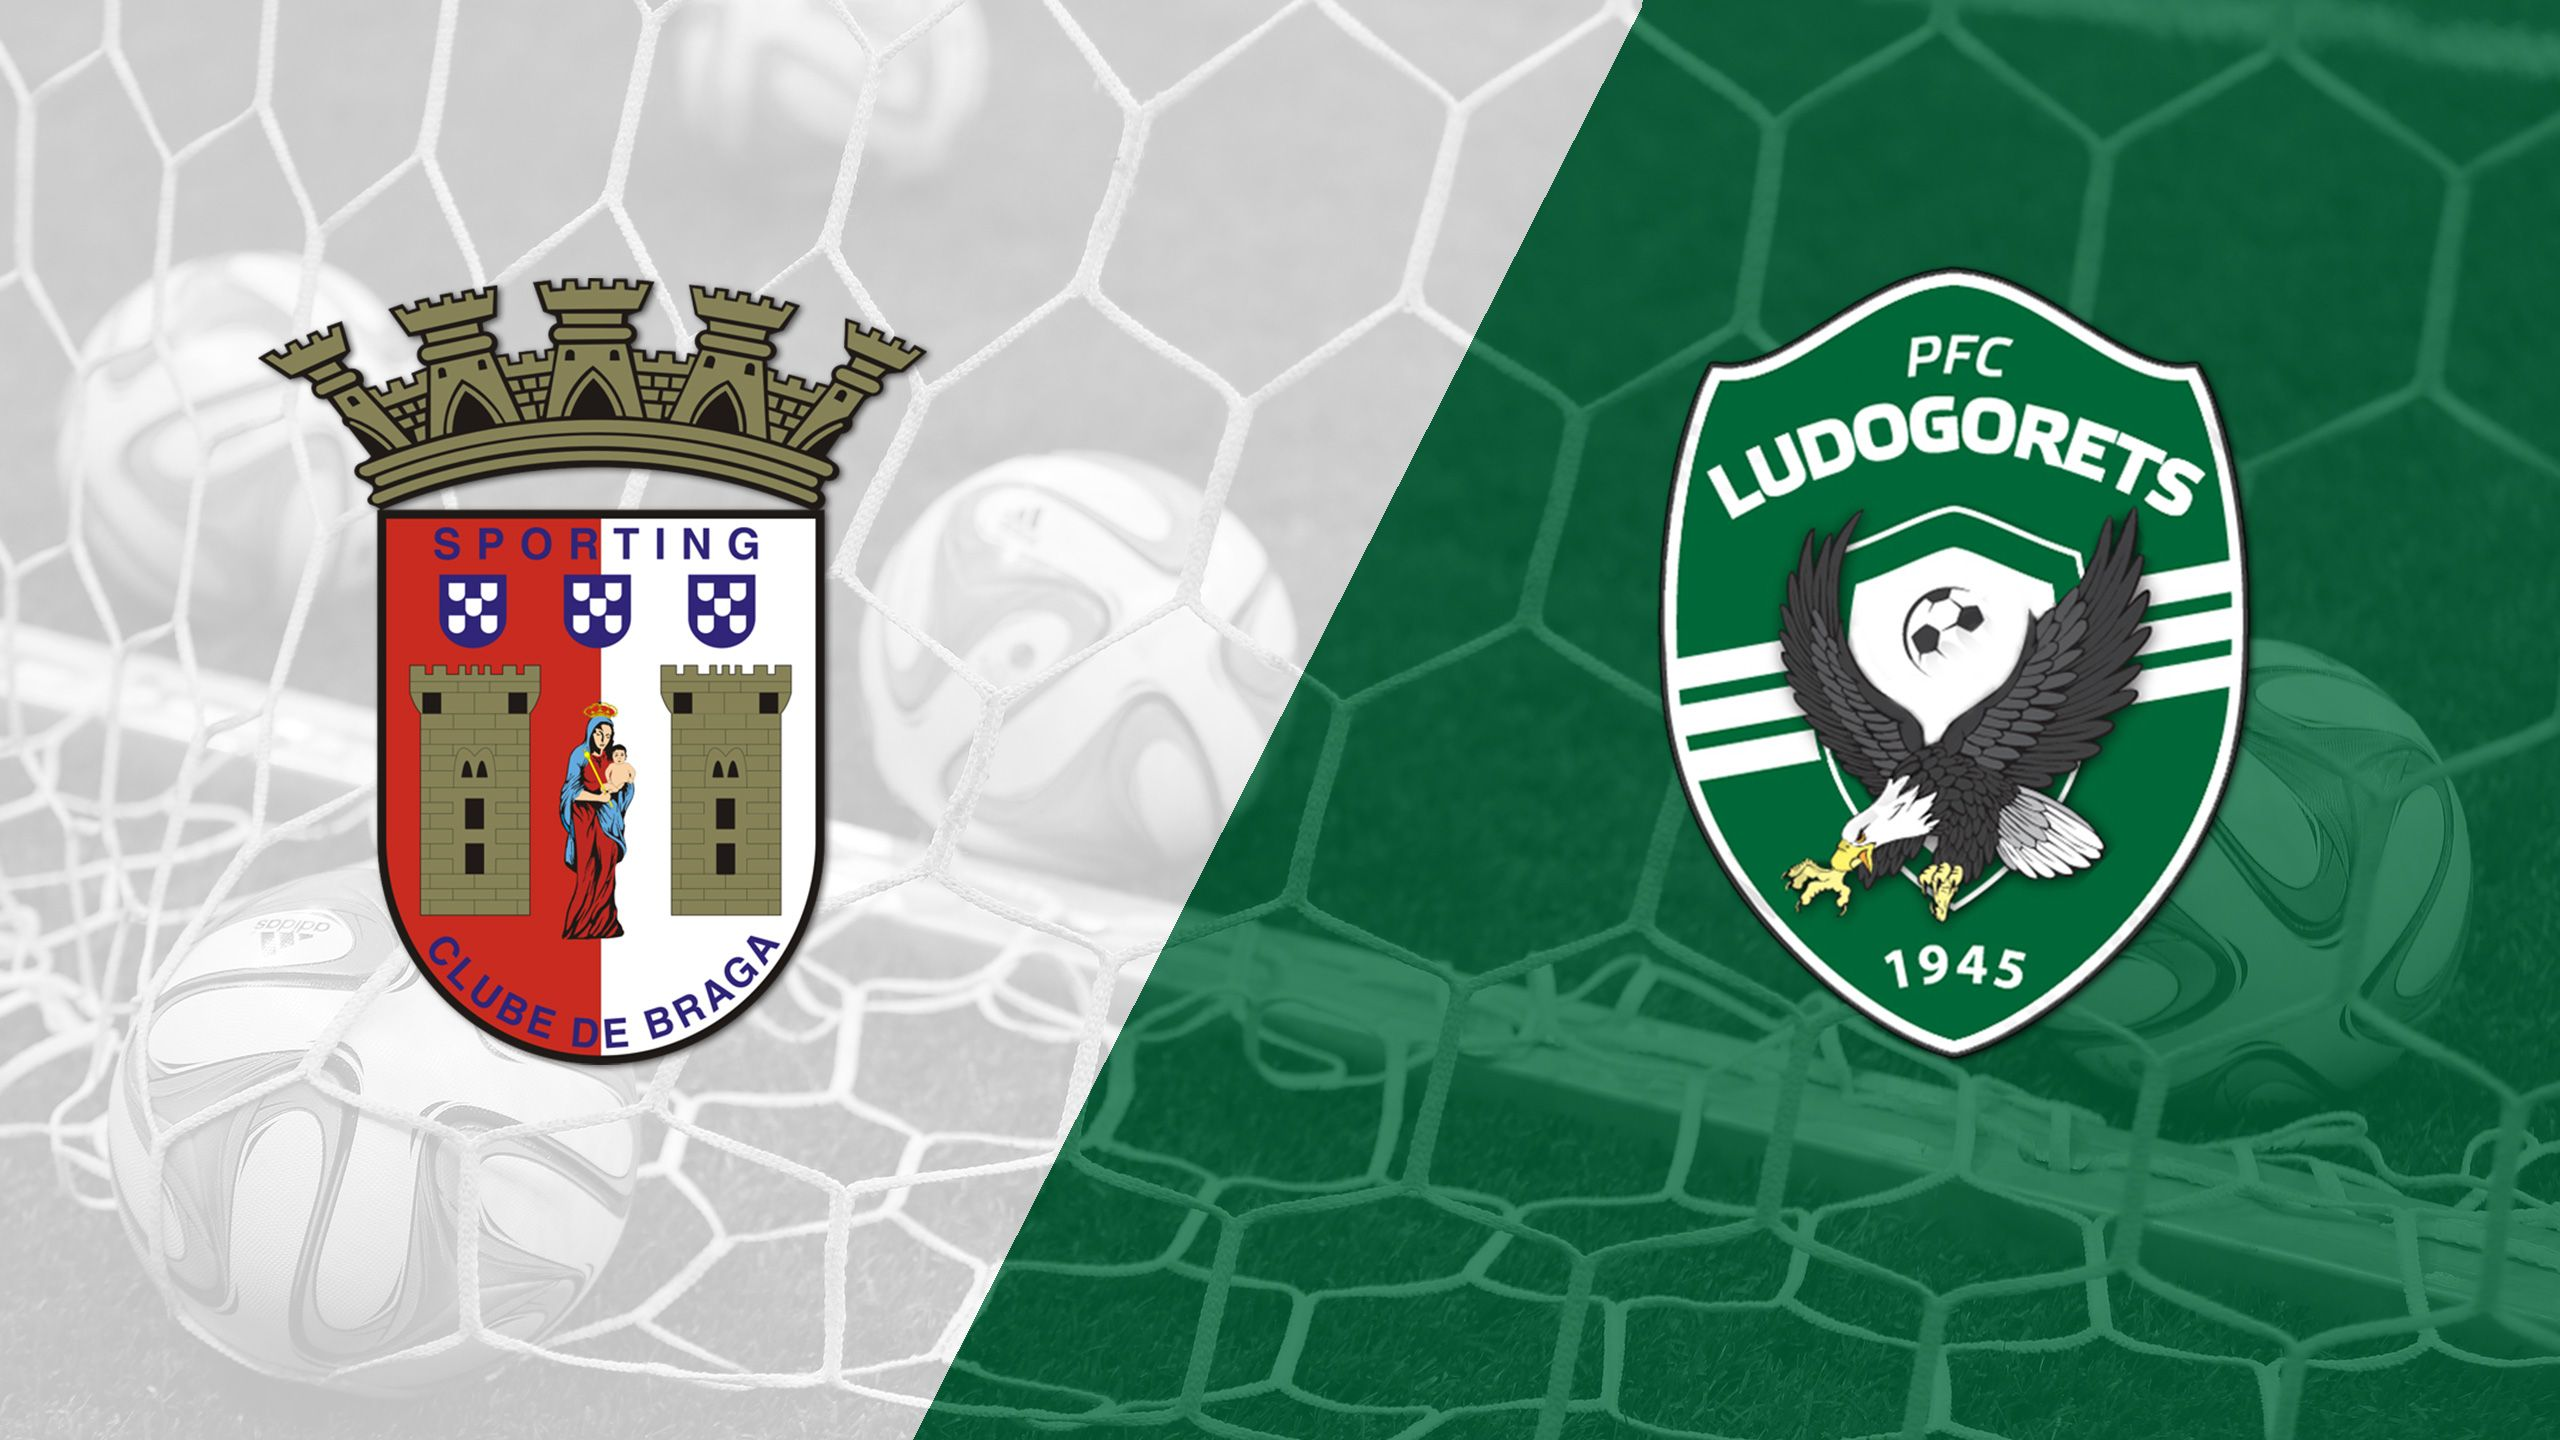 In Spanish - SC Braga vs. PFC Ludogorets 1945 (Group Stage #3) (UEFA Europa League)